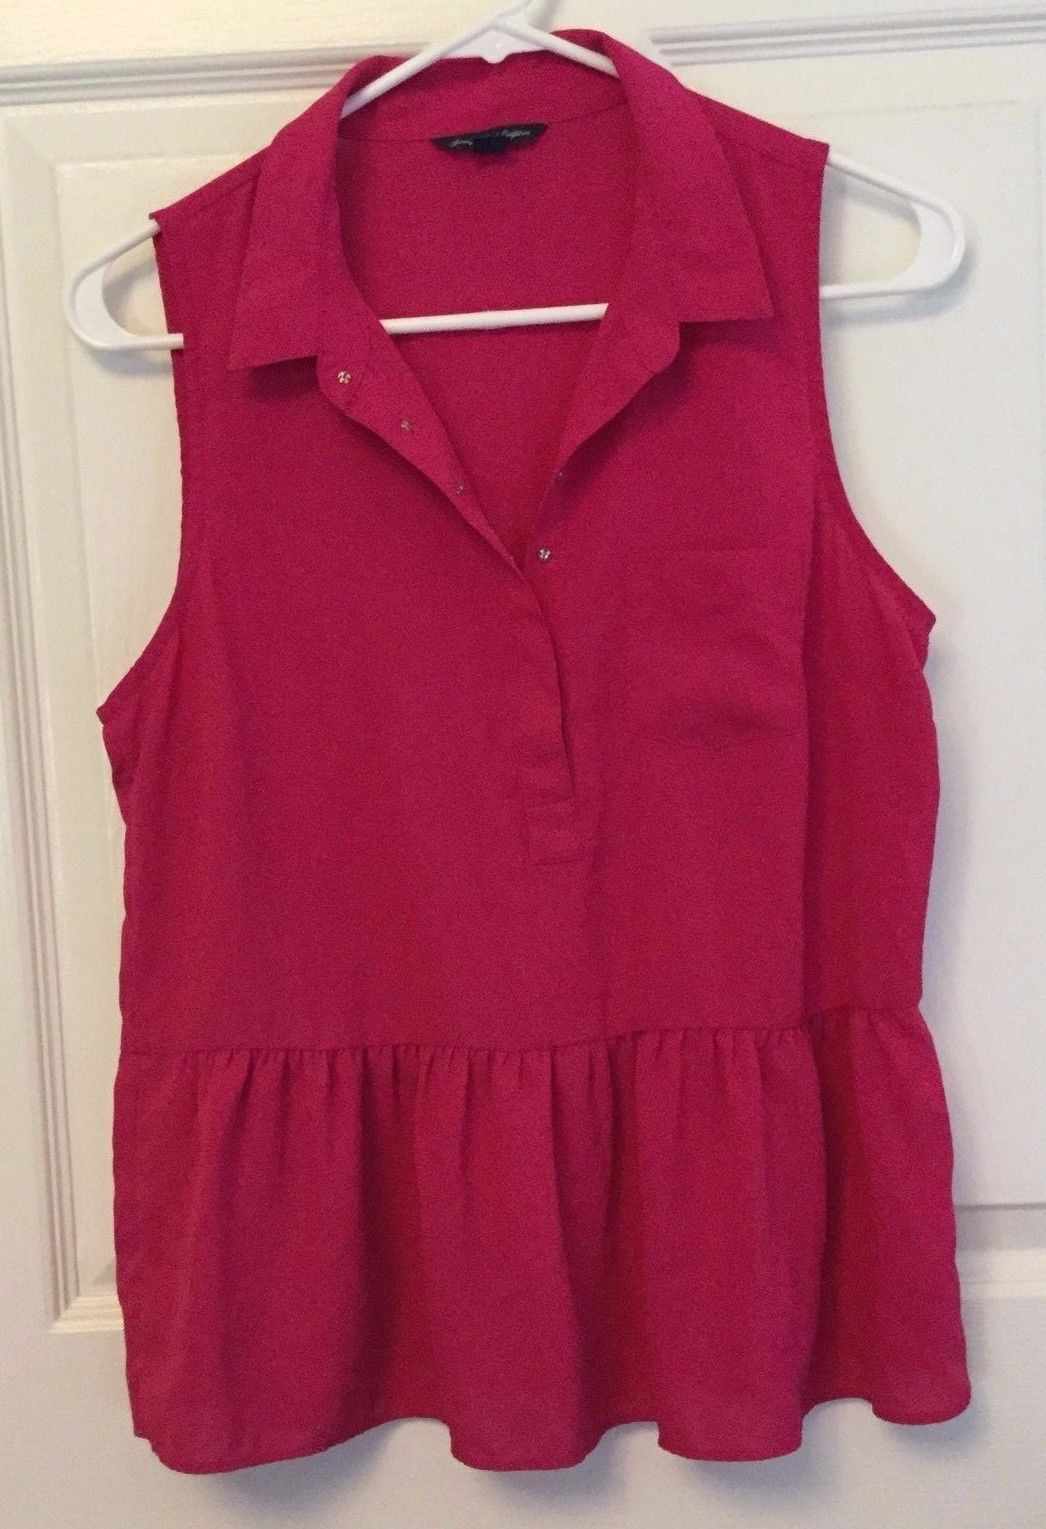 Primary image for Silky Sleeveless Summer Blouse Top American Eagle Collar Raspberry Pink Size M